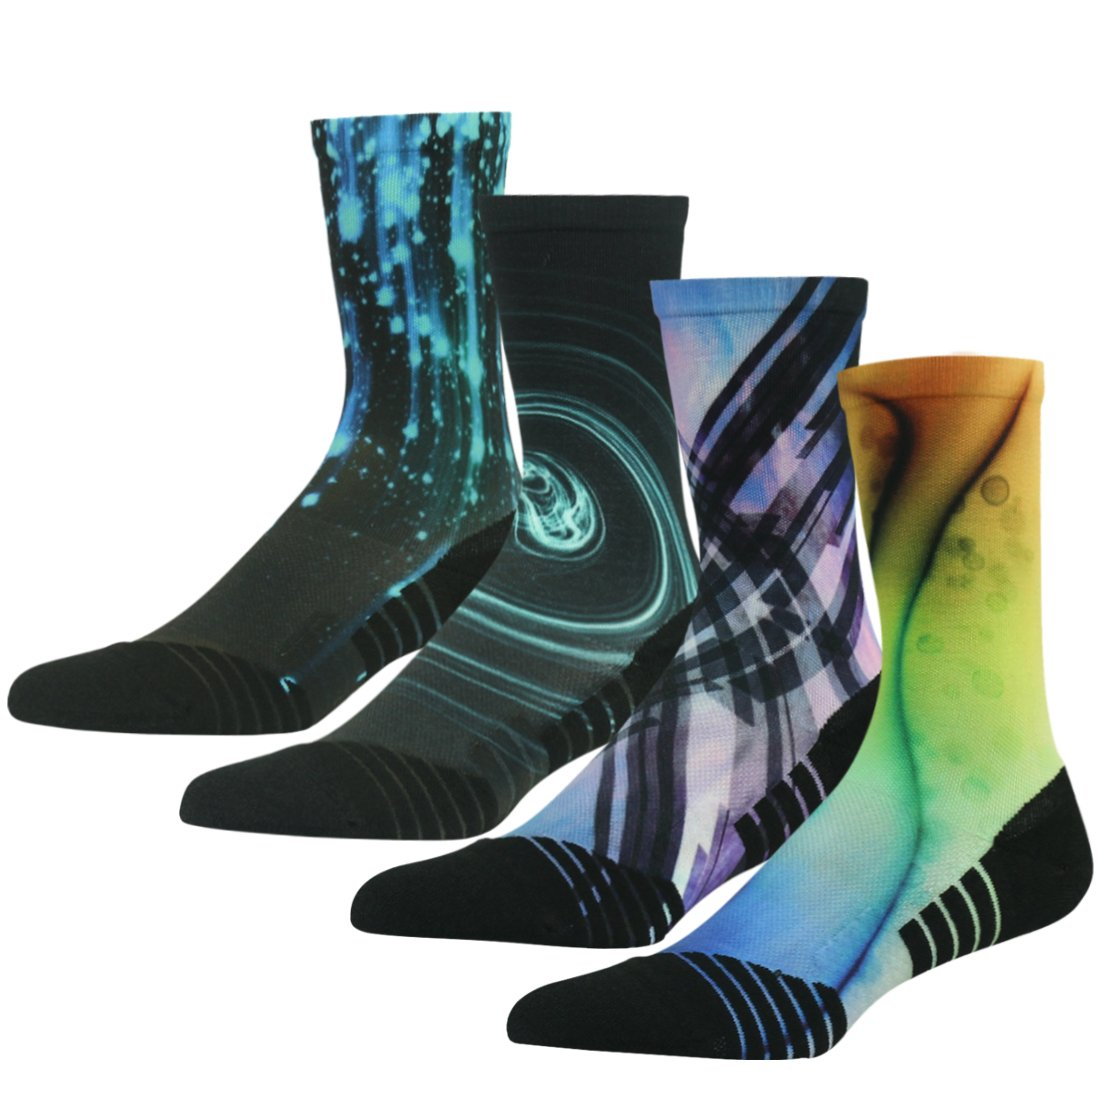 4 Pair color 6 Running Socks Support, HUSO Men Women High Performance Arch Compression Cushioned Quarter Socks 1,2,3,4,6 Pairs